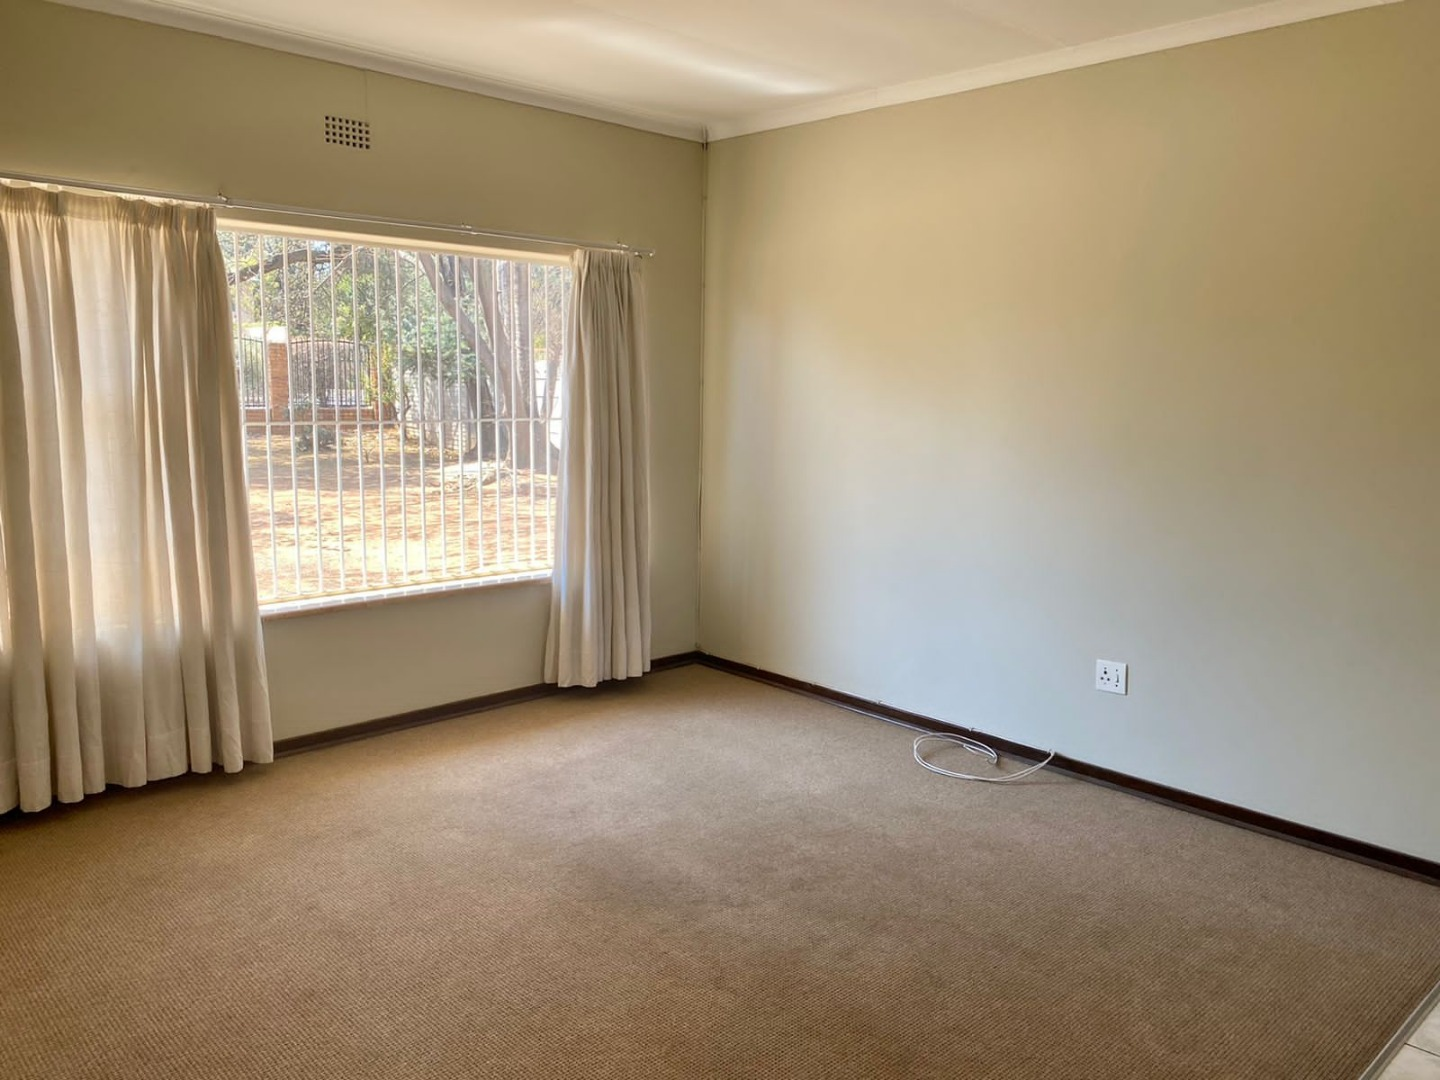 3 Bedroom House To Rent in Aston Manor